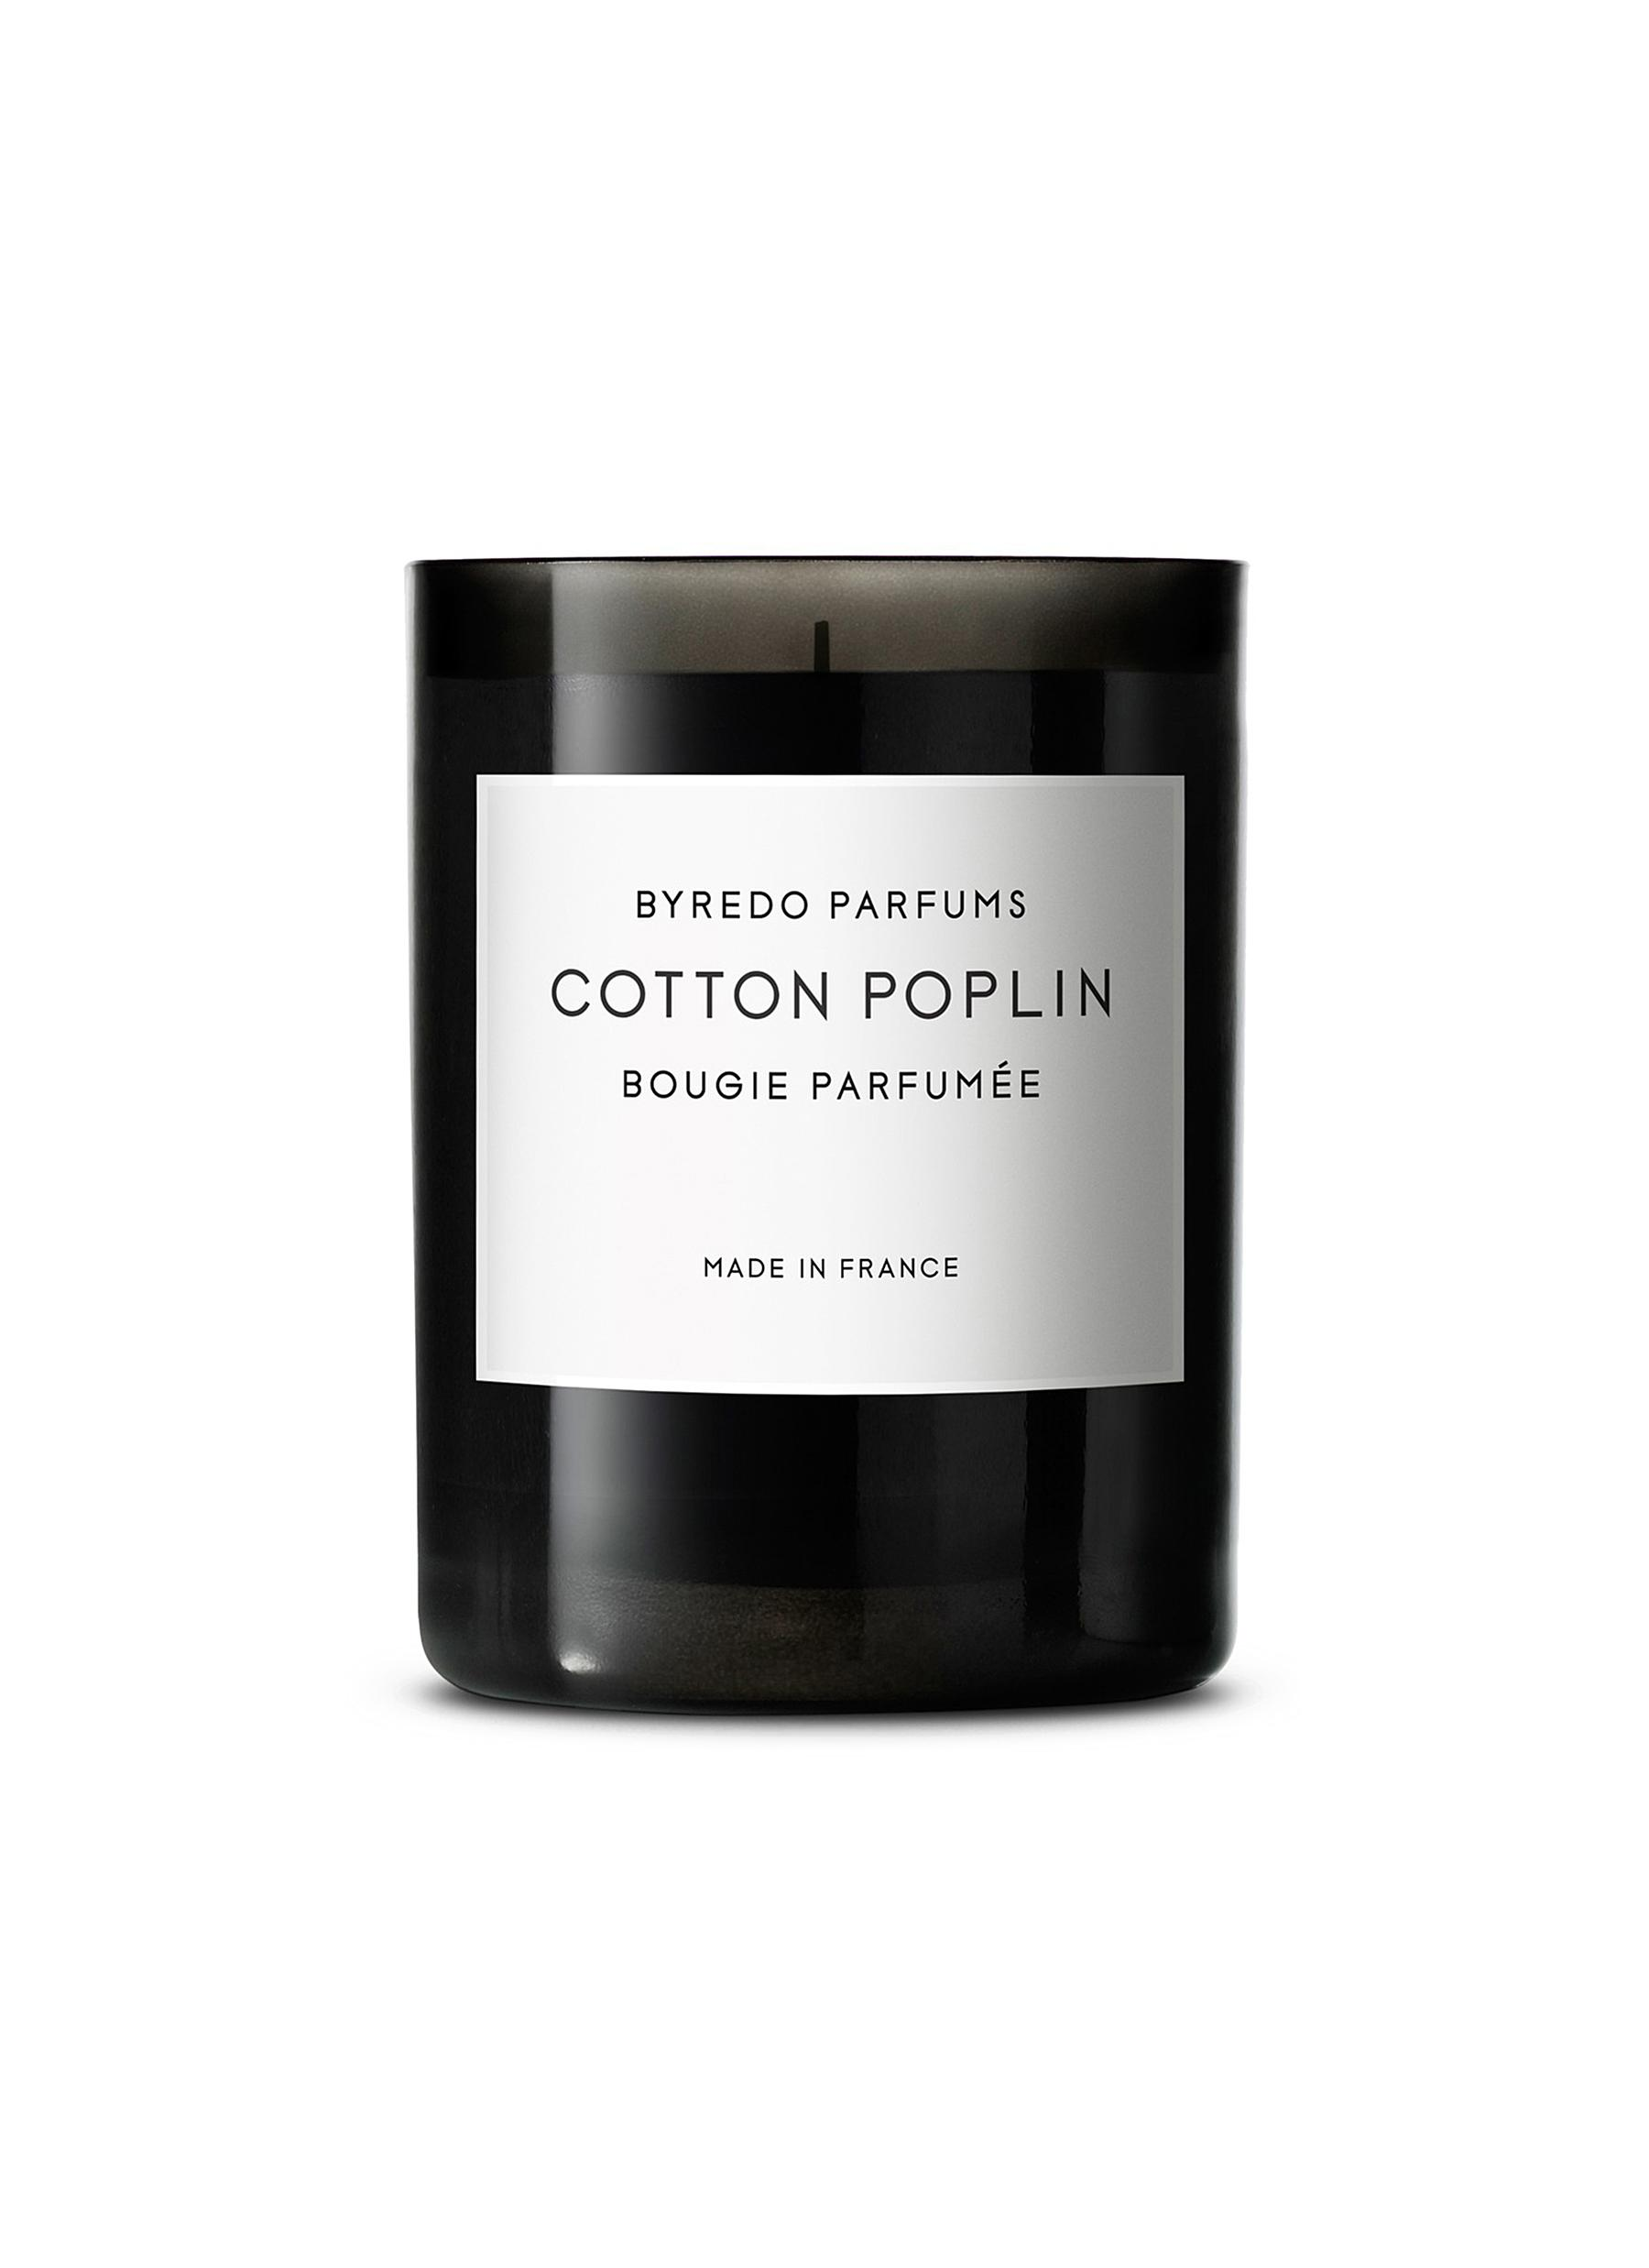 Cotton Poplin Fragranced Candle 240g by BYREDO